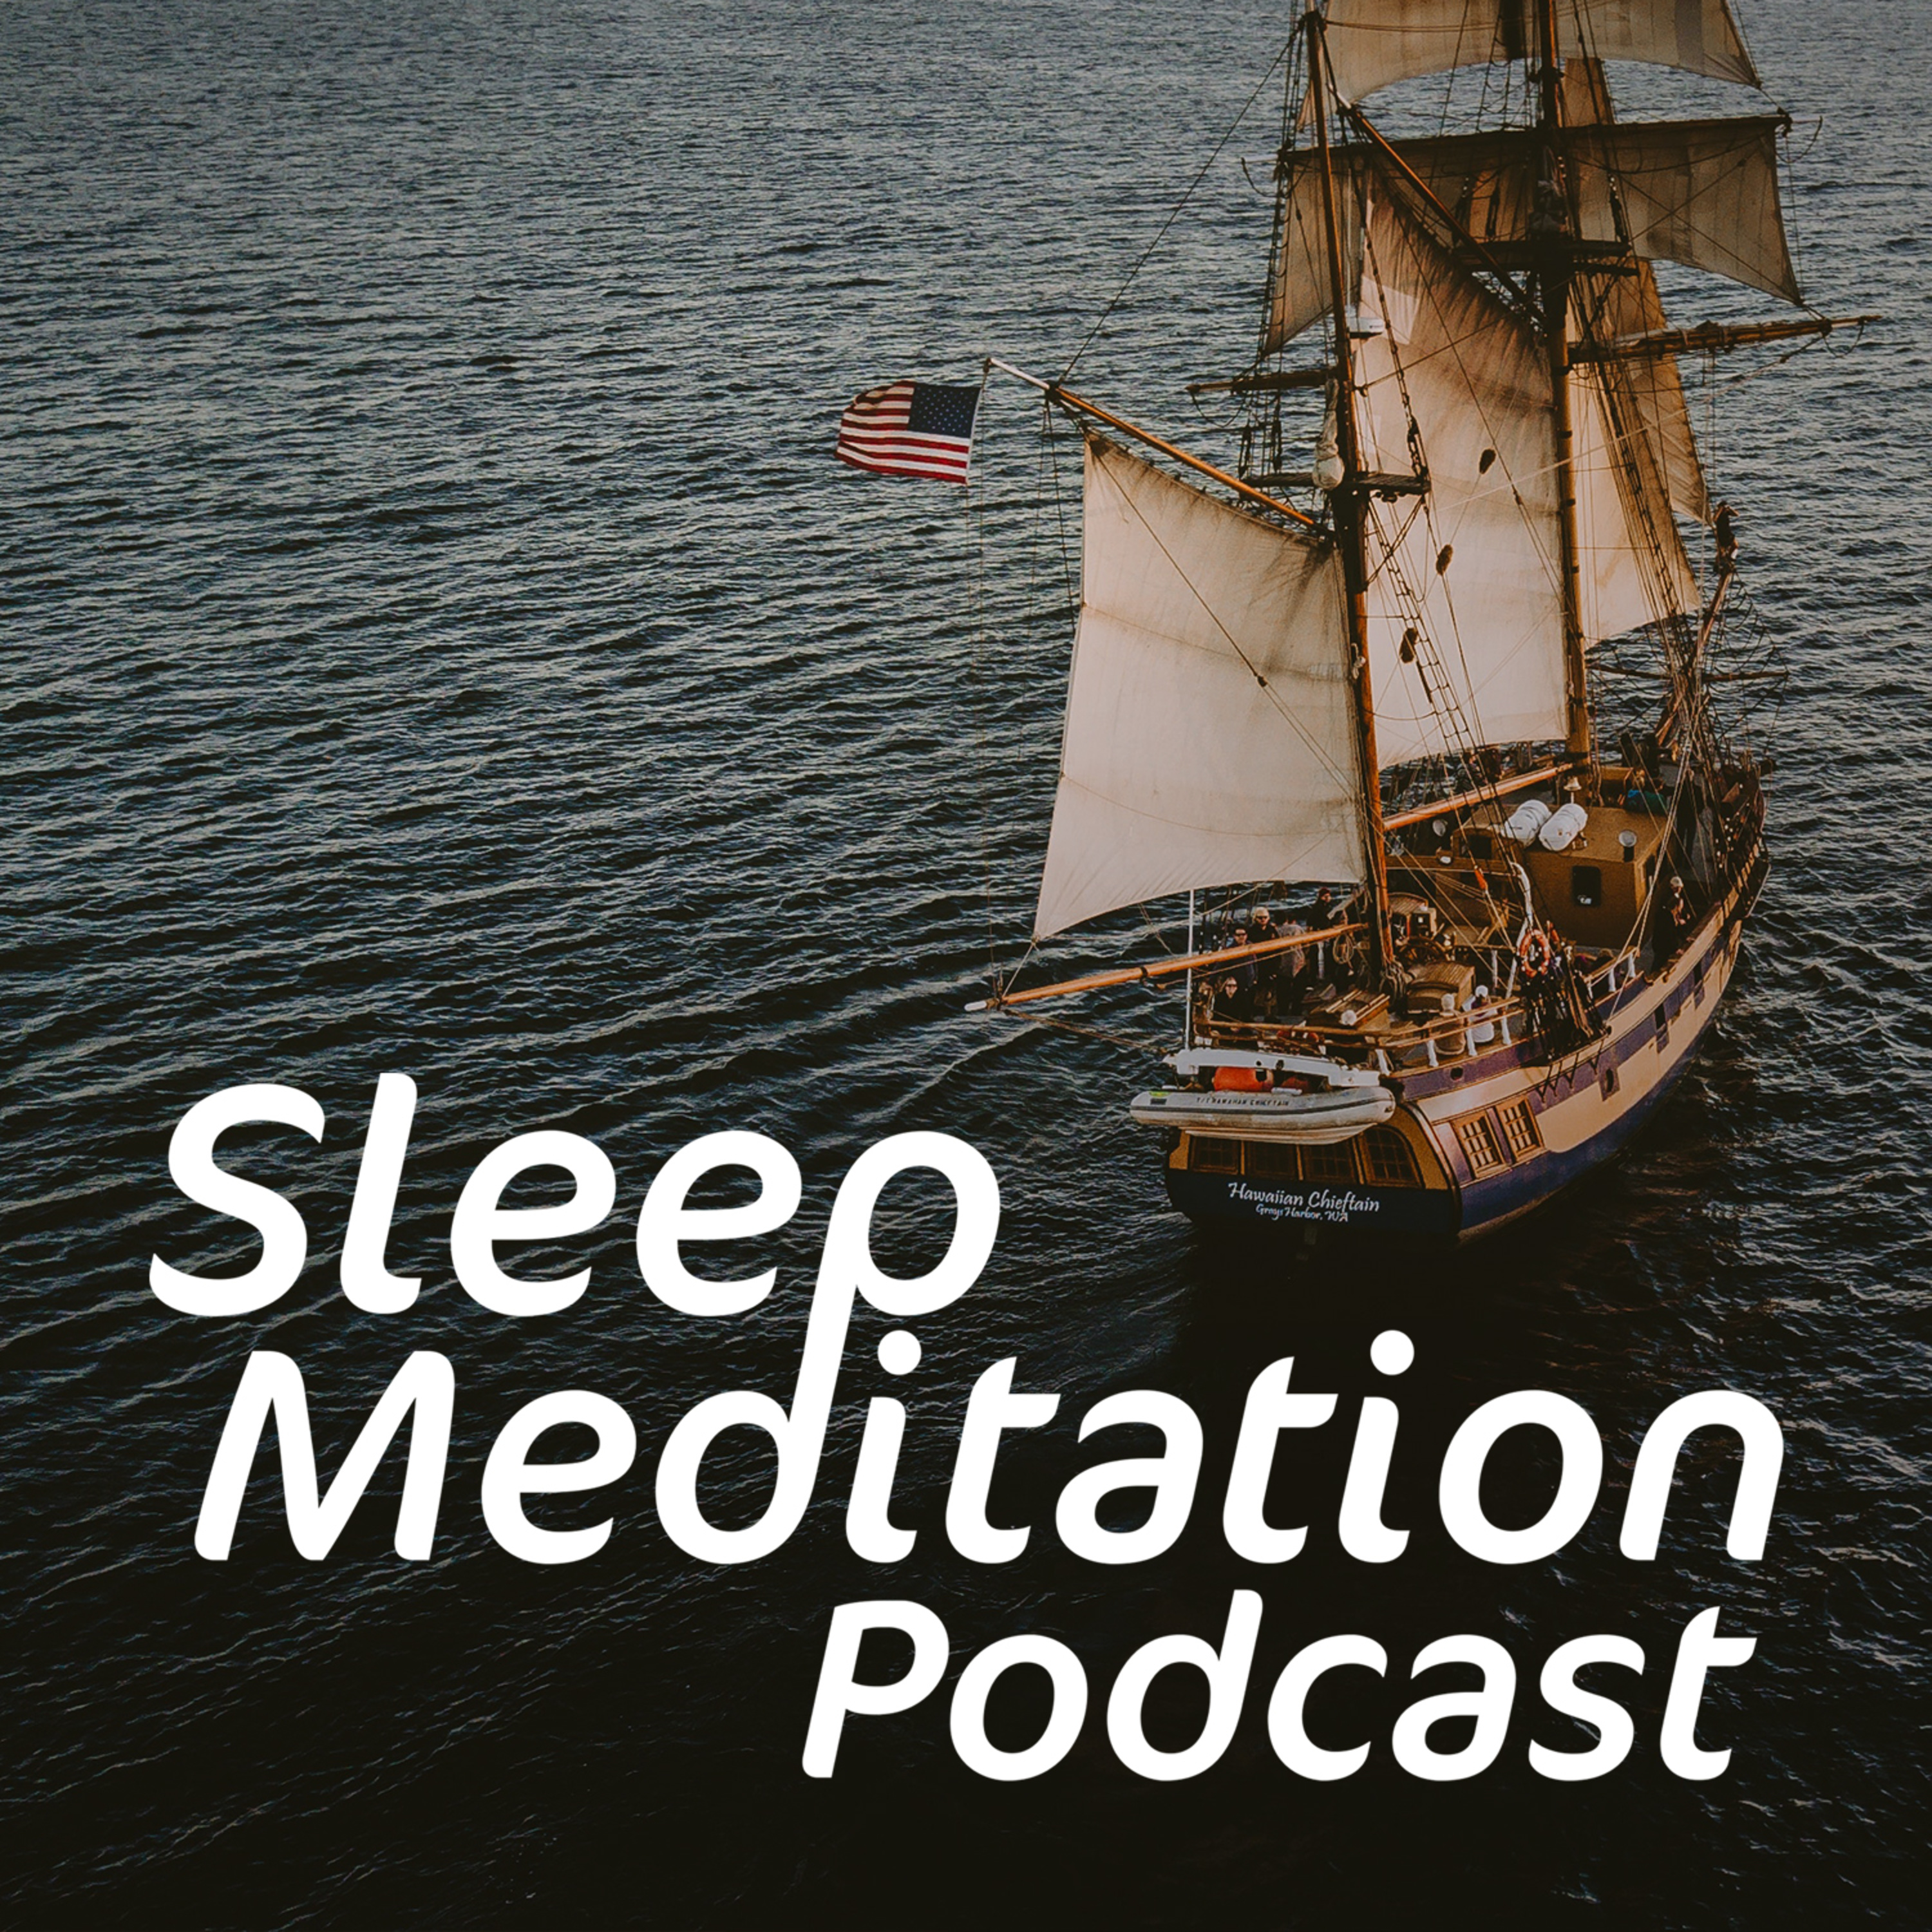 SLEEP AMBIENCE: On board a Pirate Ship - The Captain's Cabin